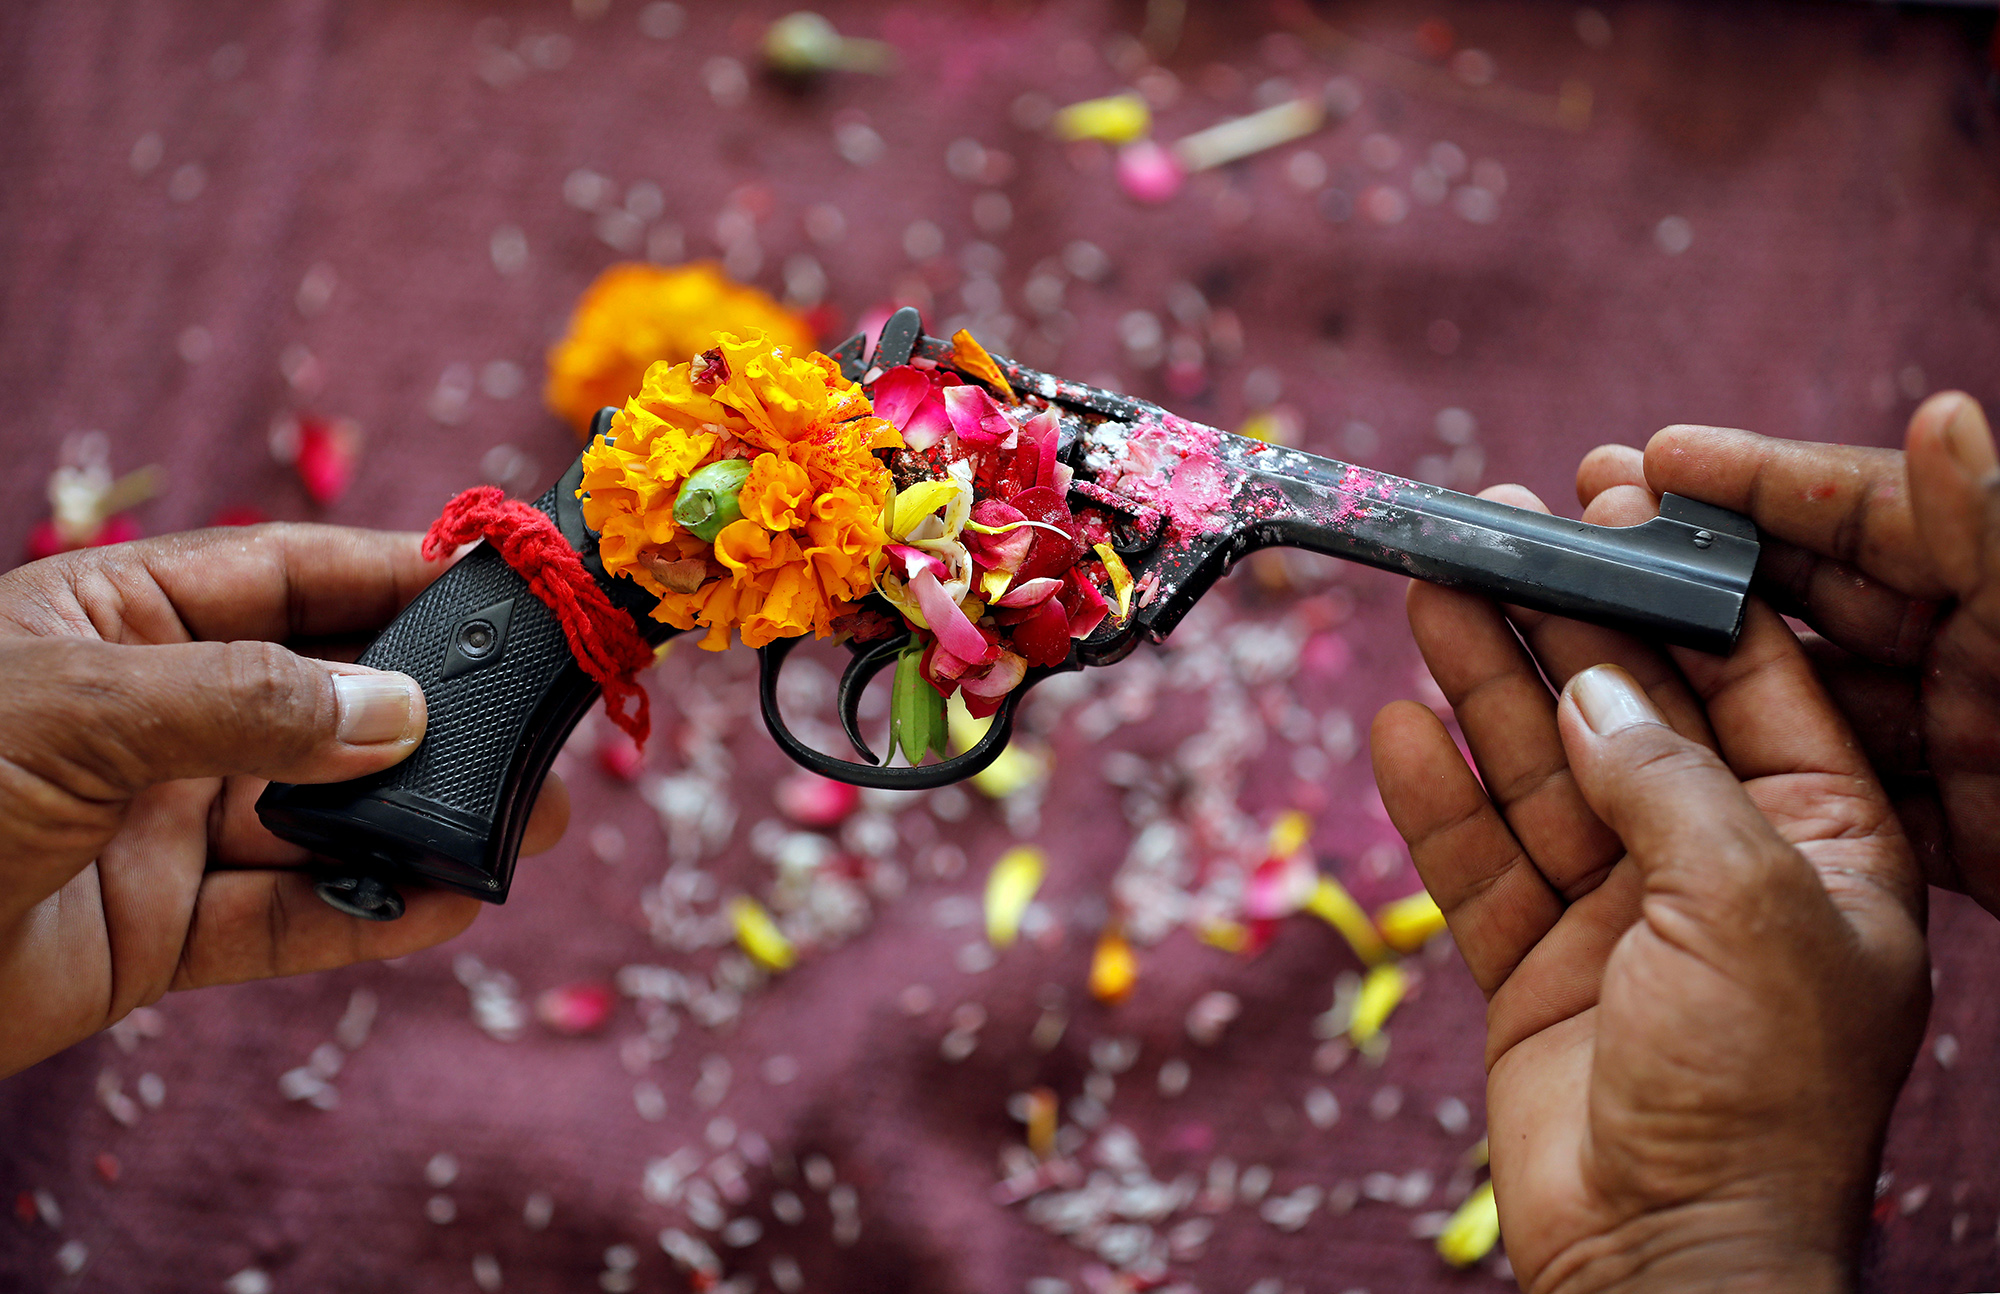 Police officers hold a revolver as they offer prayers to their weapons as part of a ritual at their headquarters on the occasion of Dussehra, or Vijaya Dashami, festival in Ahmedabad, India, October 8, 2019. REUTERS/Amit Dave TPX IMAGES OF THE DAY